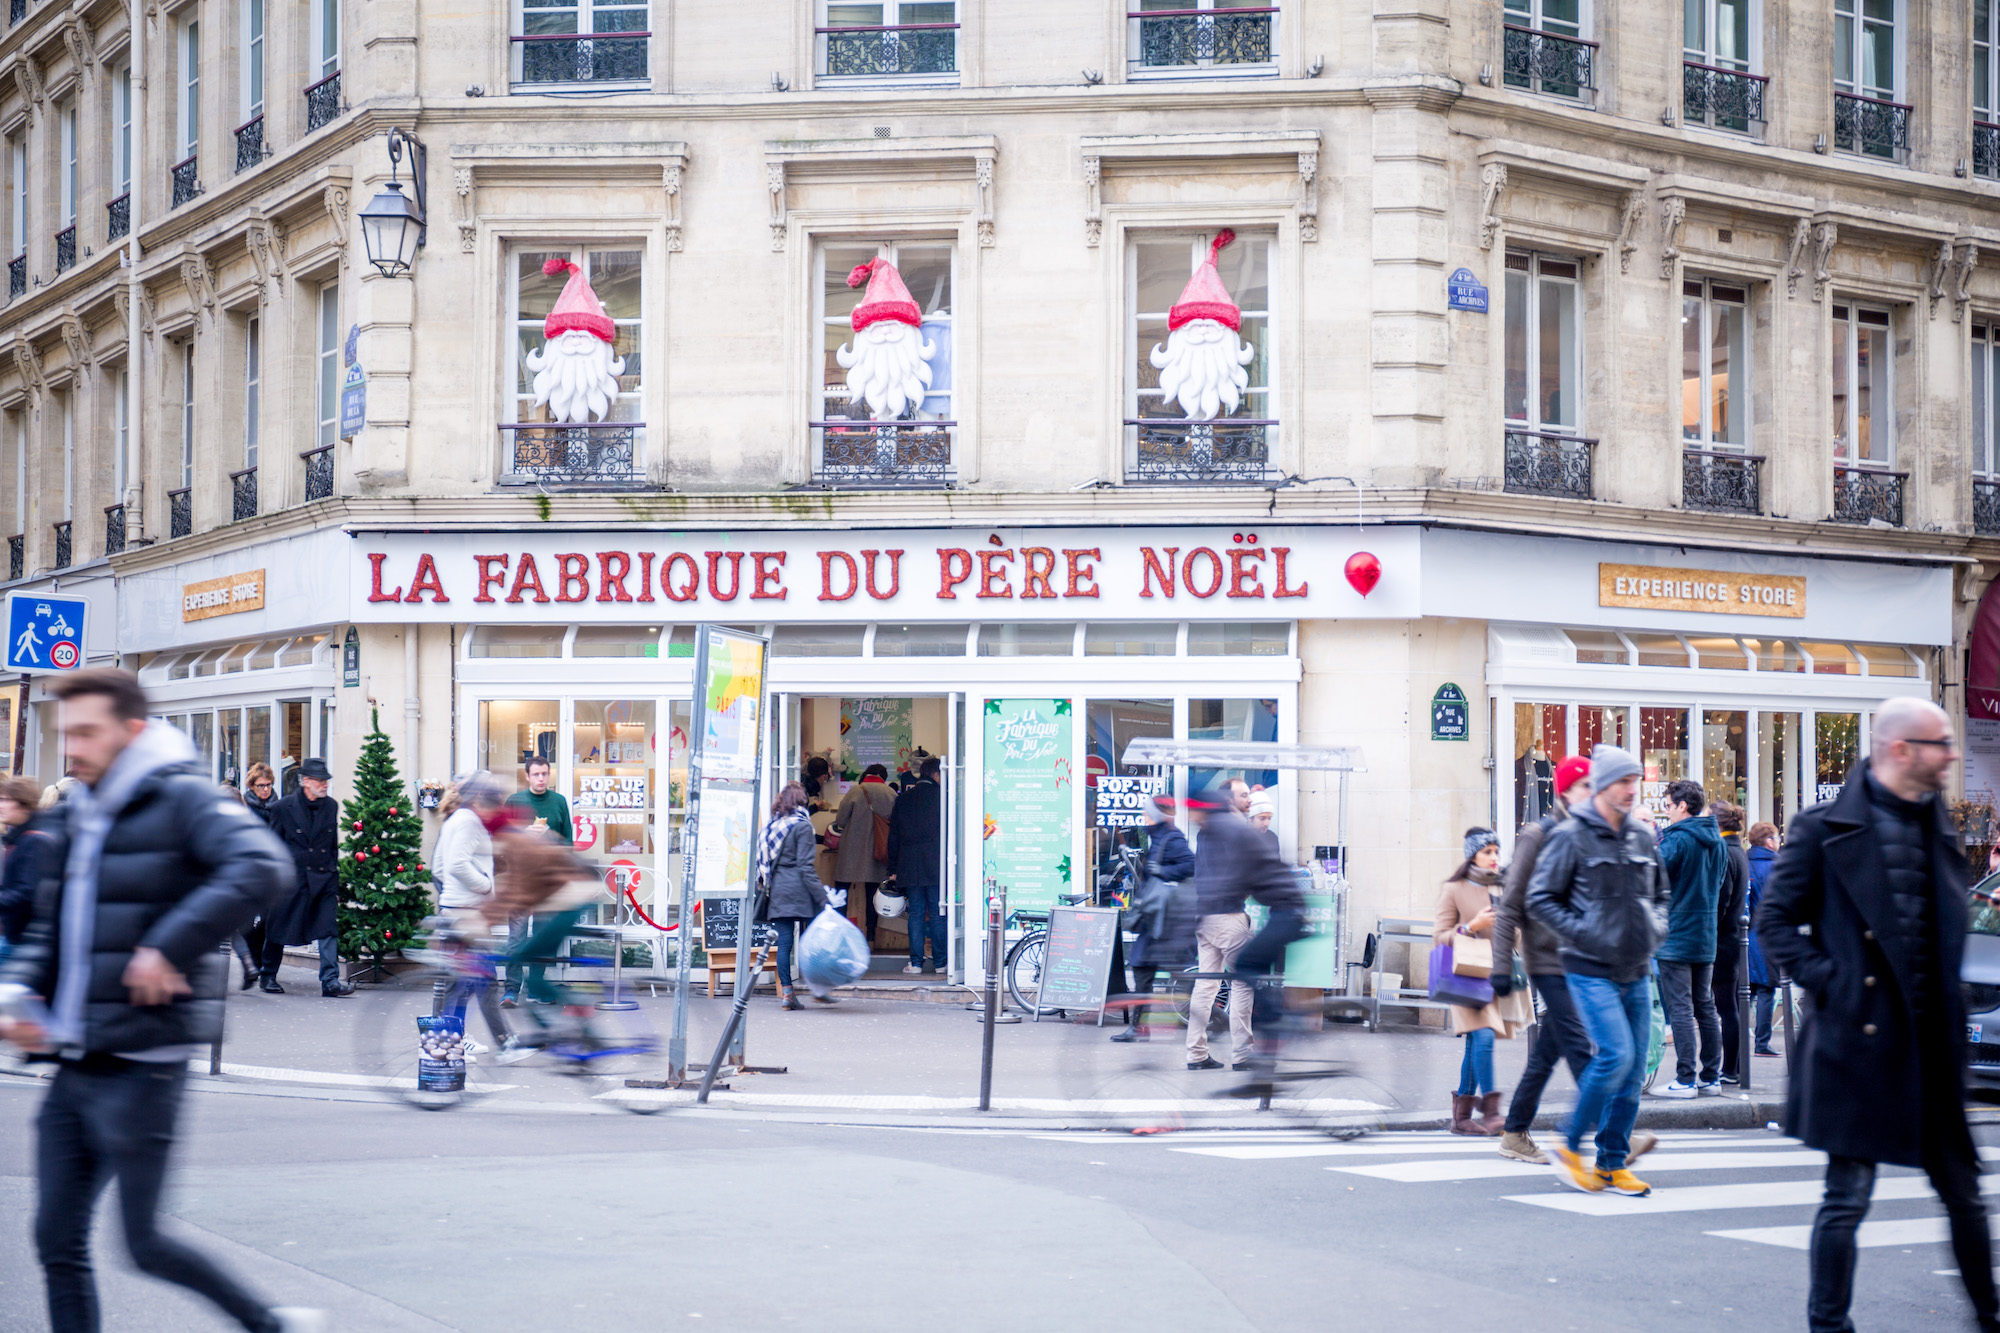 A go-to spot for Christmas shopping in Paris is giant pop-up store La Fabrique du Père Noel in the Marais neighborhood and 17th district.